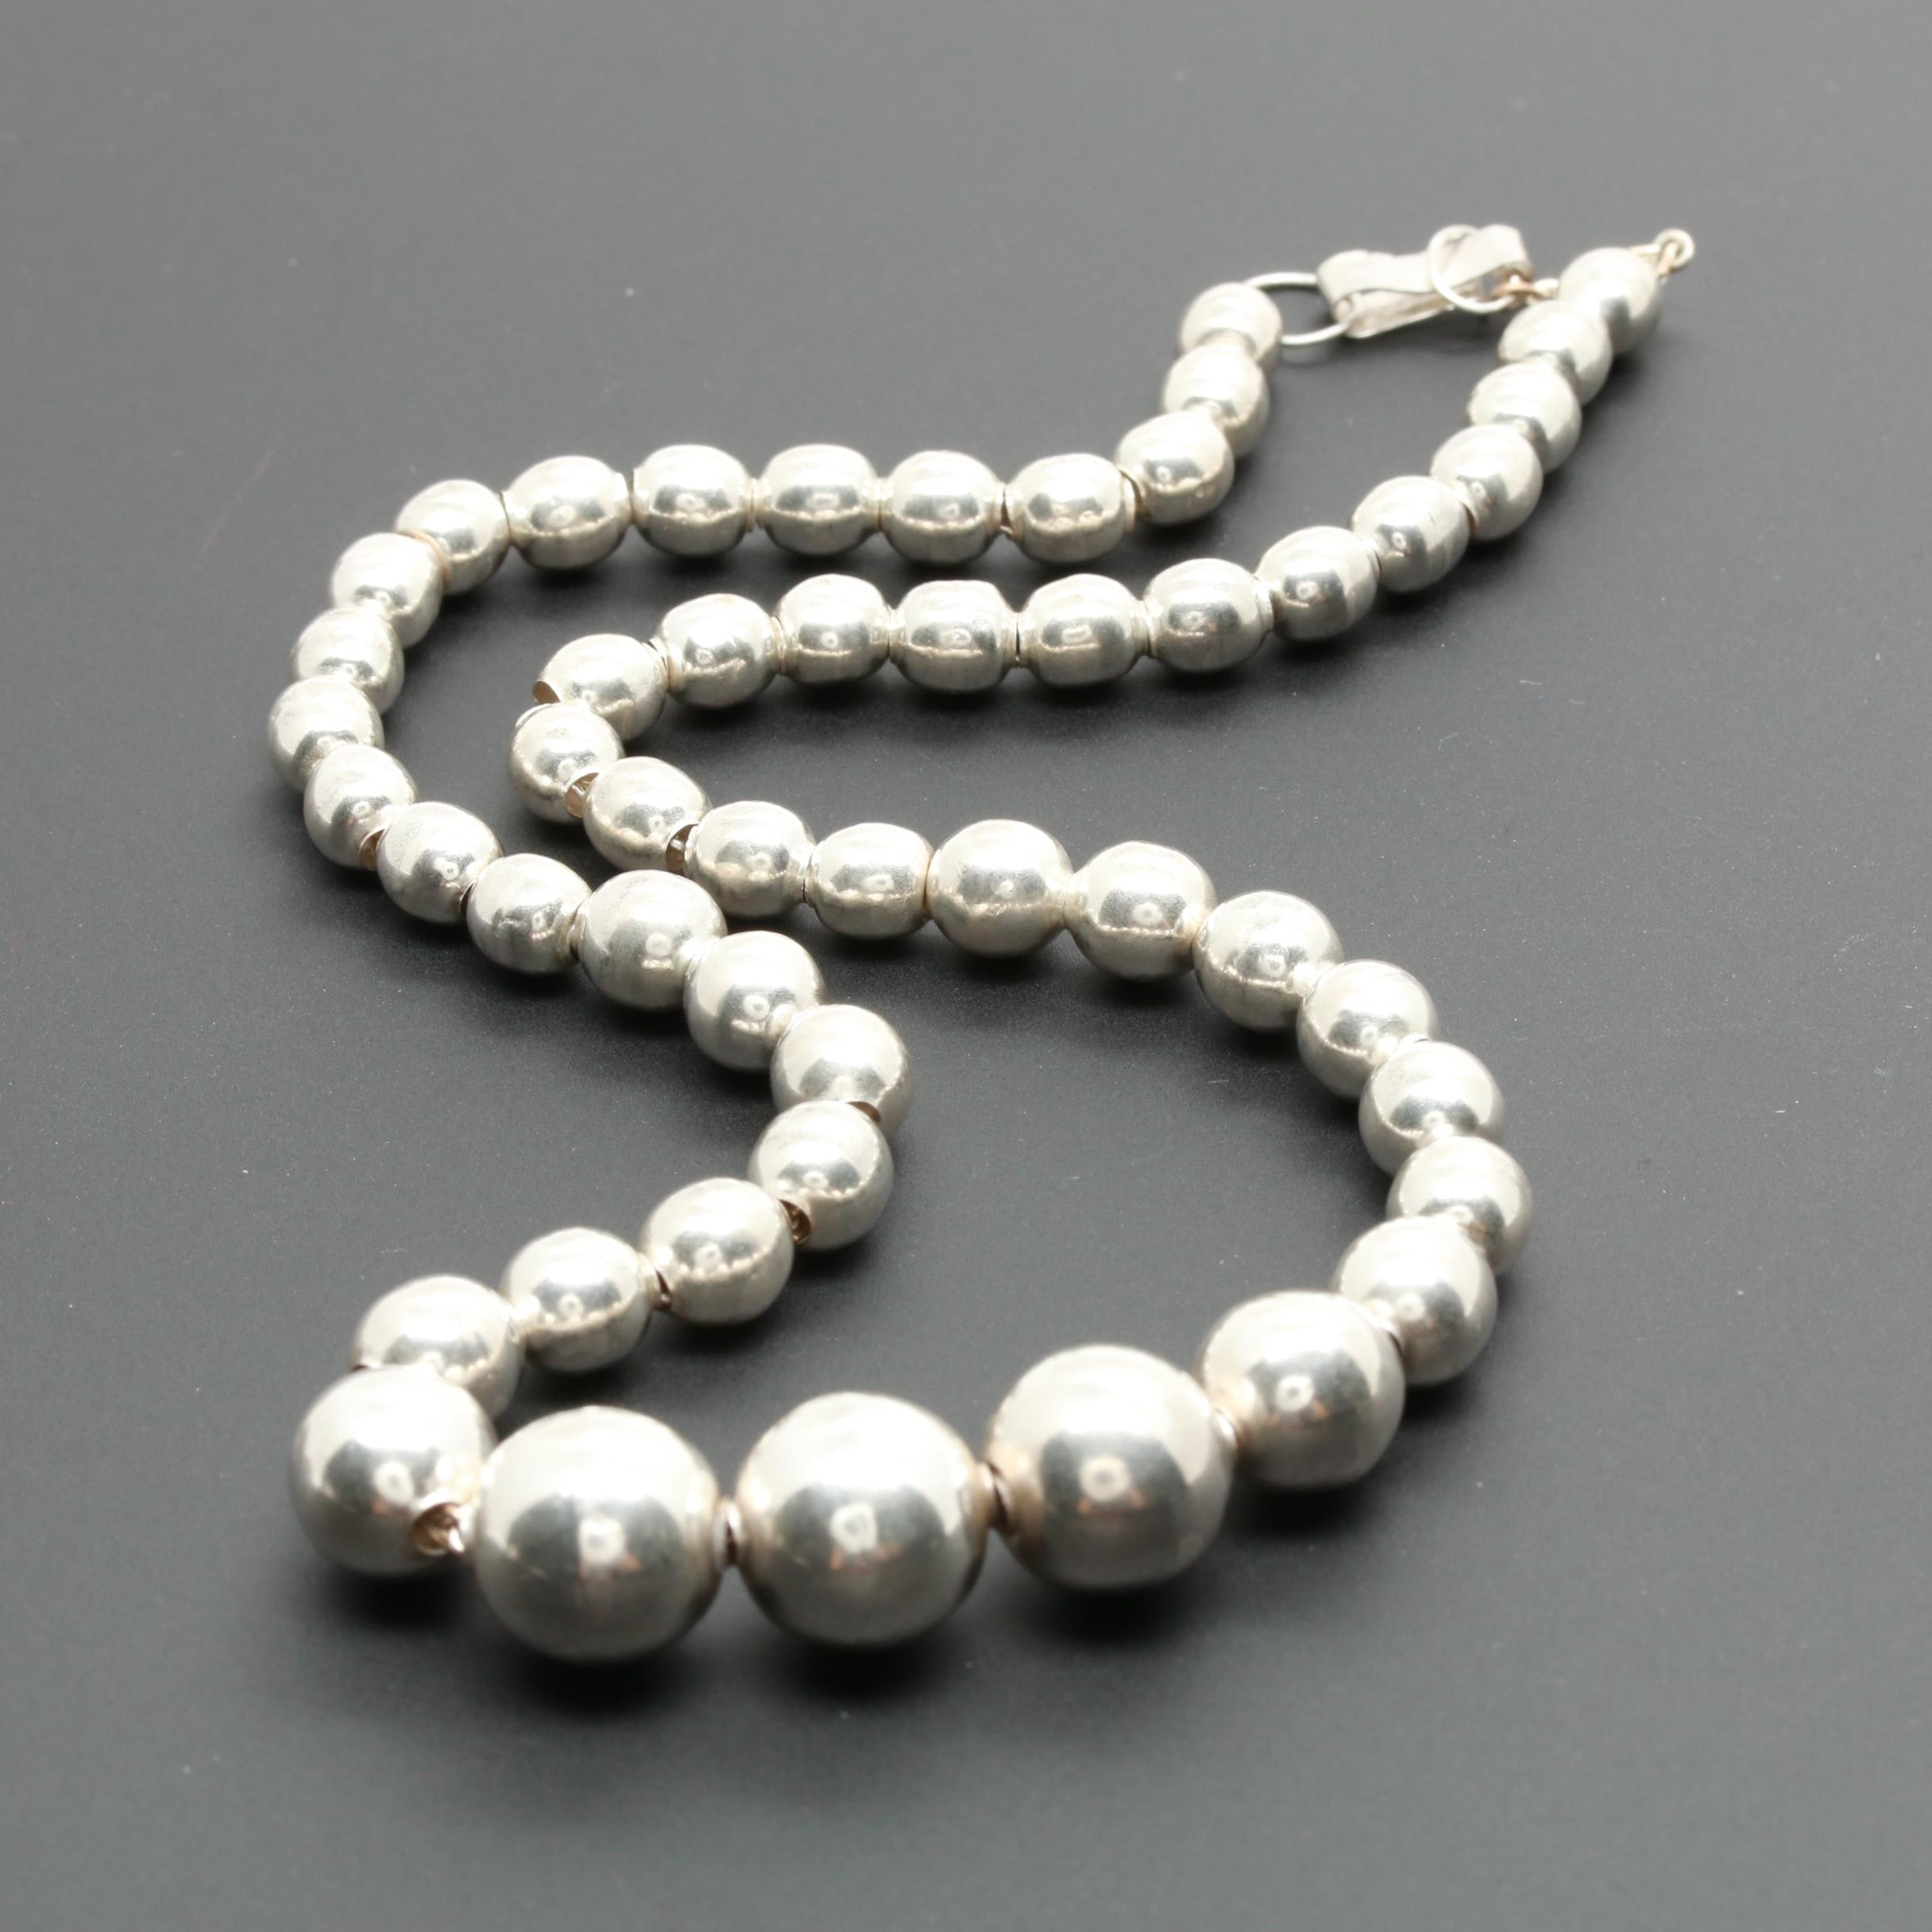 Mexico Sterling Silver Graduated Bead Necklace